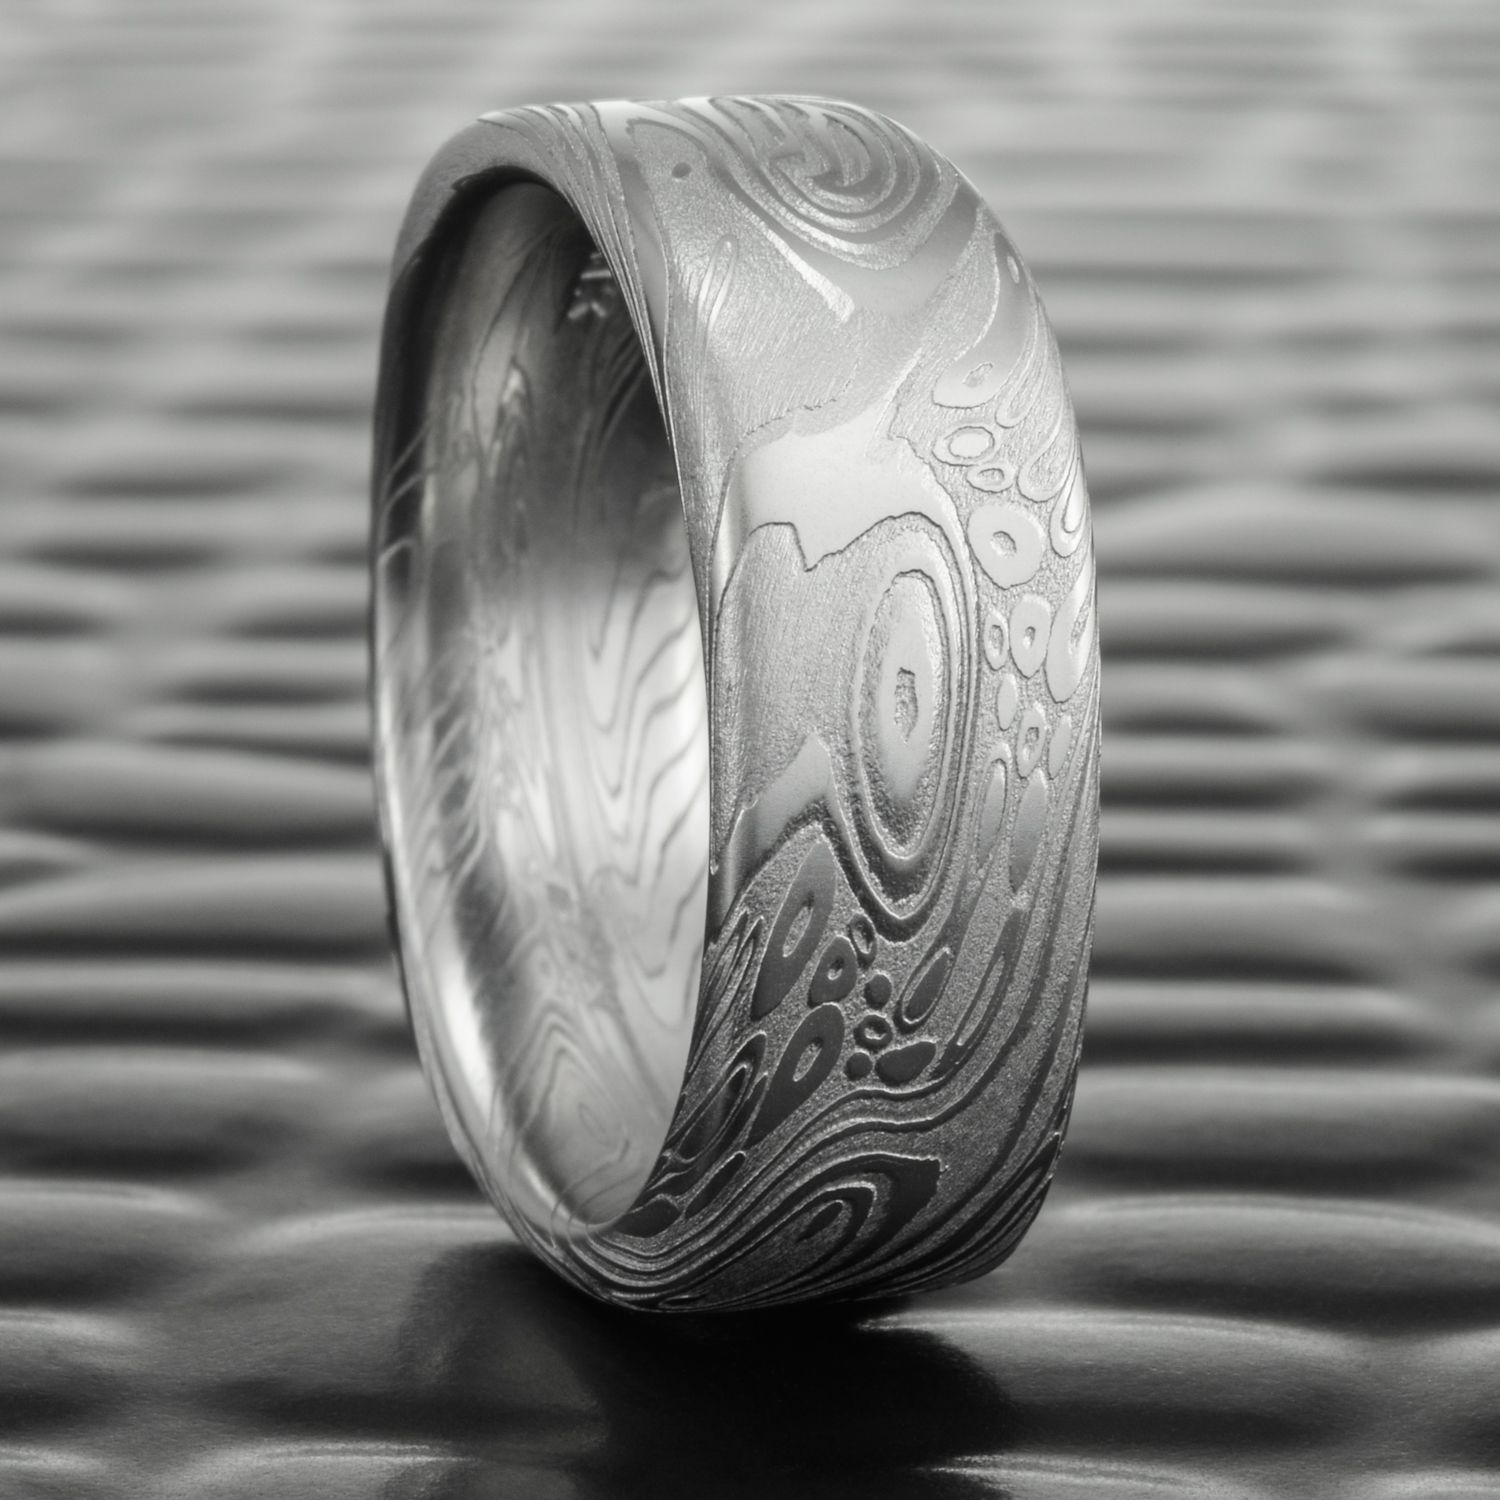 Damascus Steel Wedding Band By Steven Jacob Masculine Square Ring At Moe